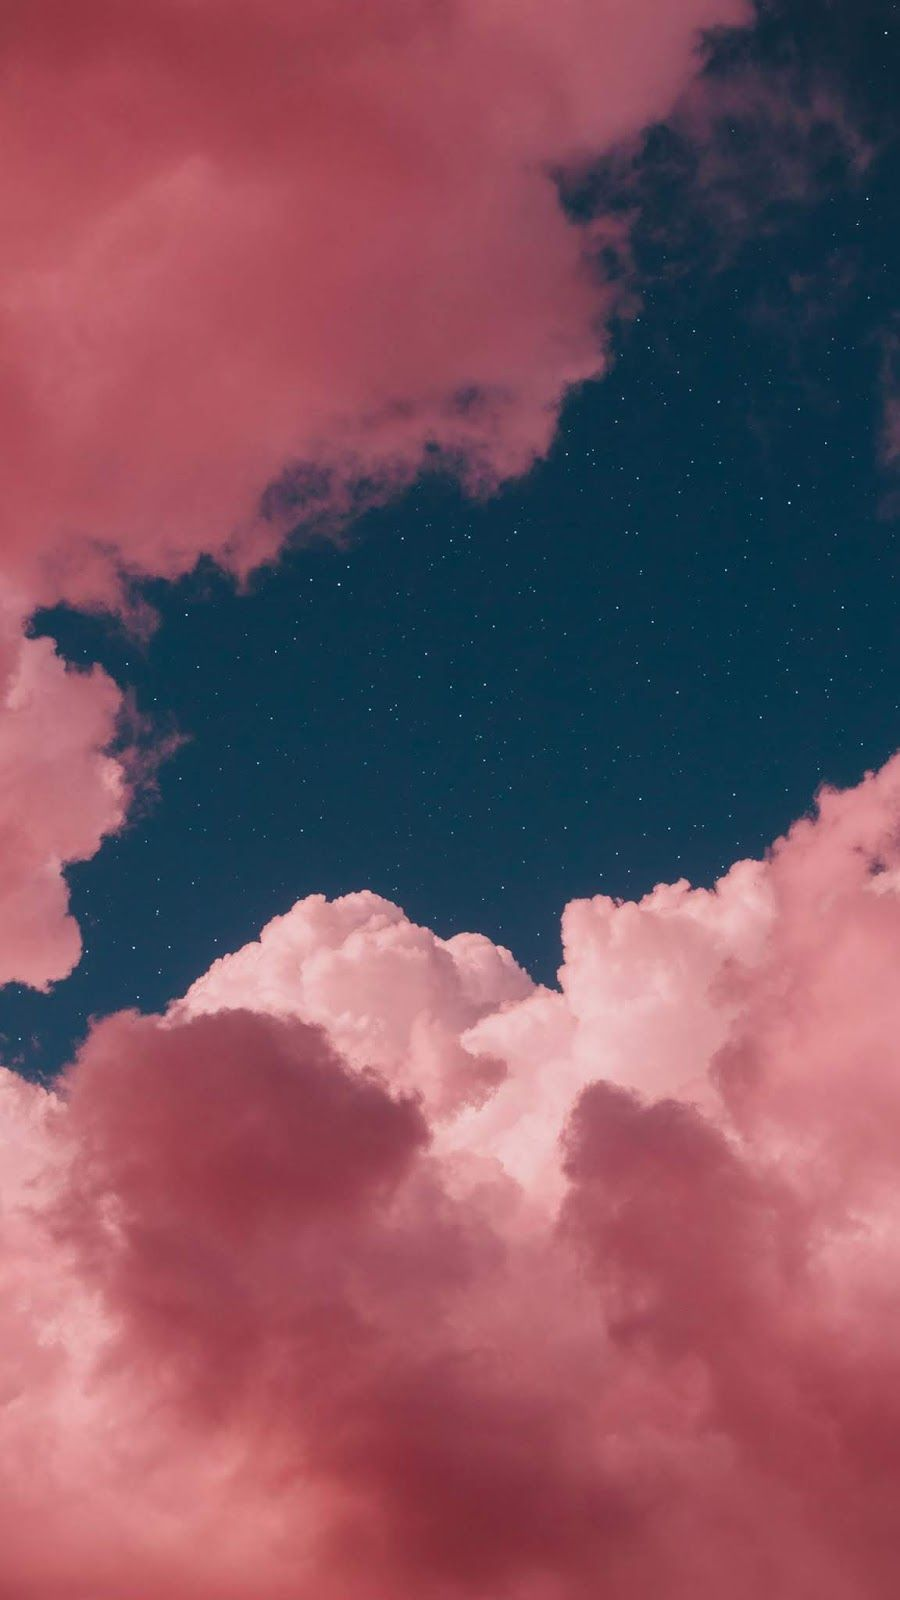 Pink Clouds Wallpaper Iphone Android Background Followme Pretty Wallpapers Pink Clouds Wallpaper Cloud Wallpaper